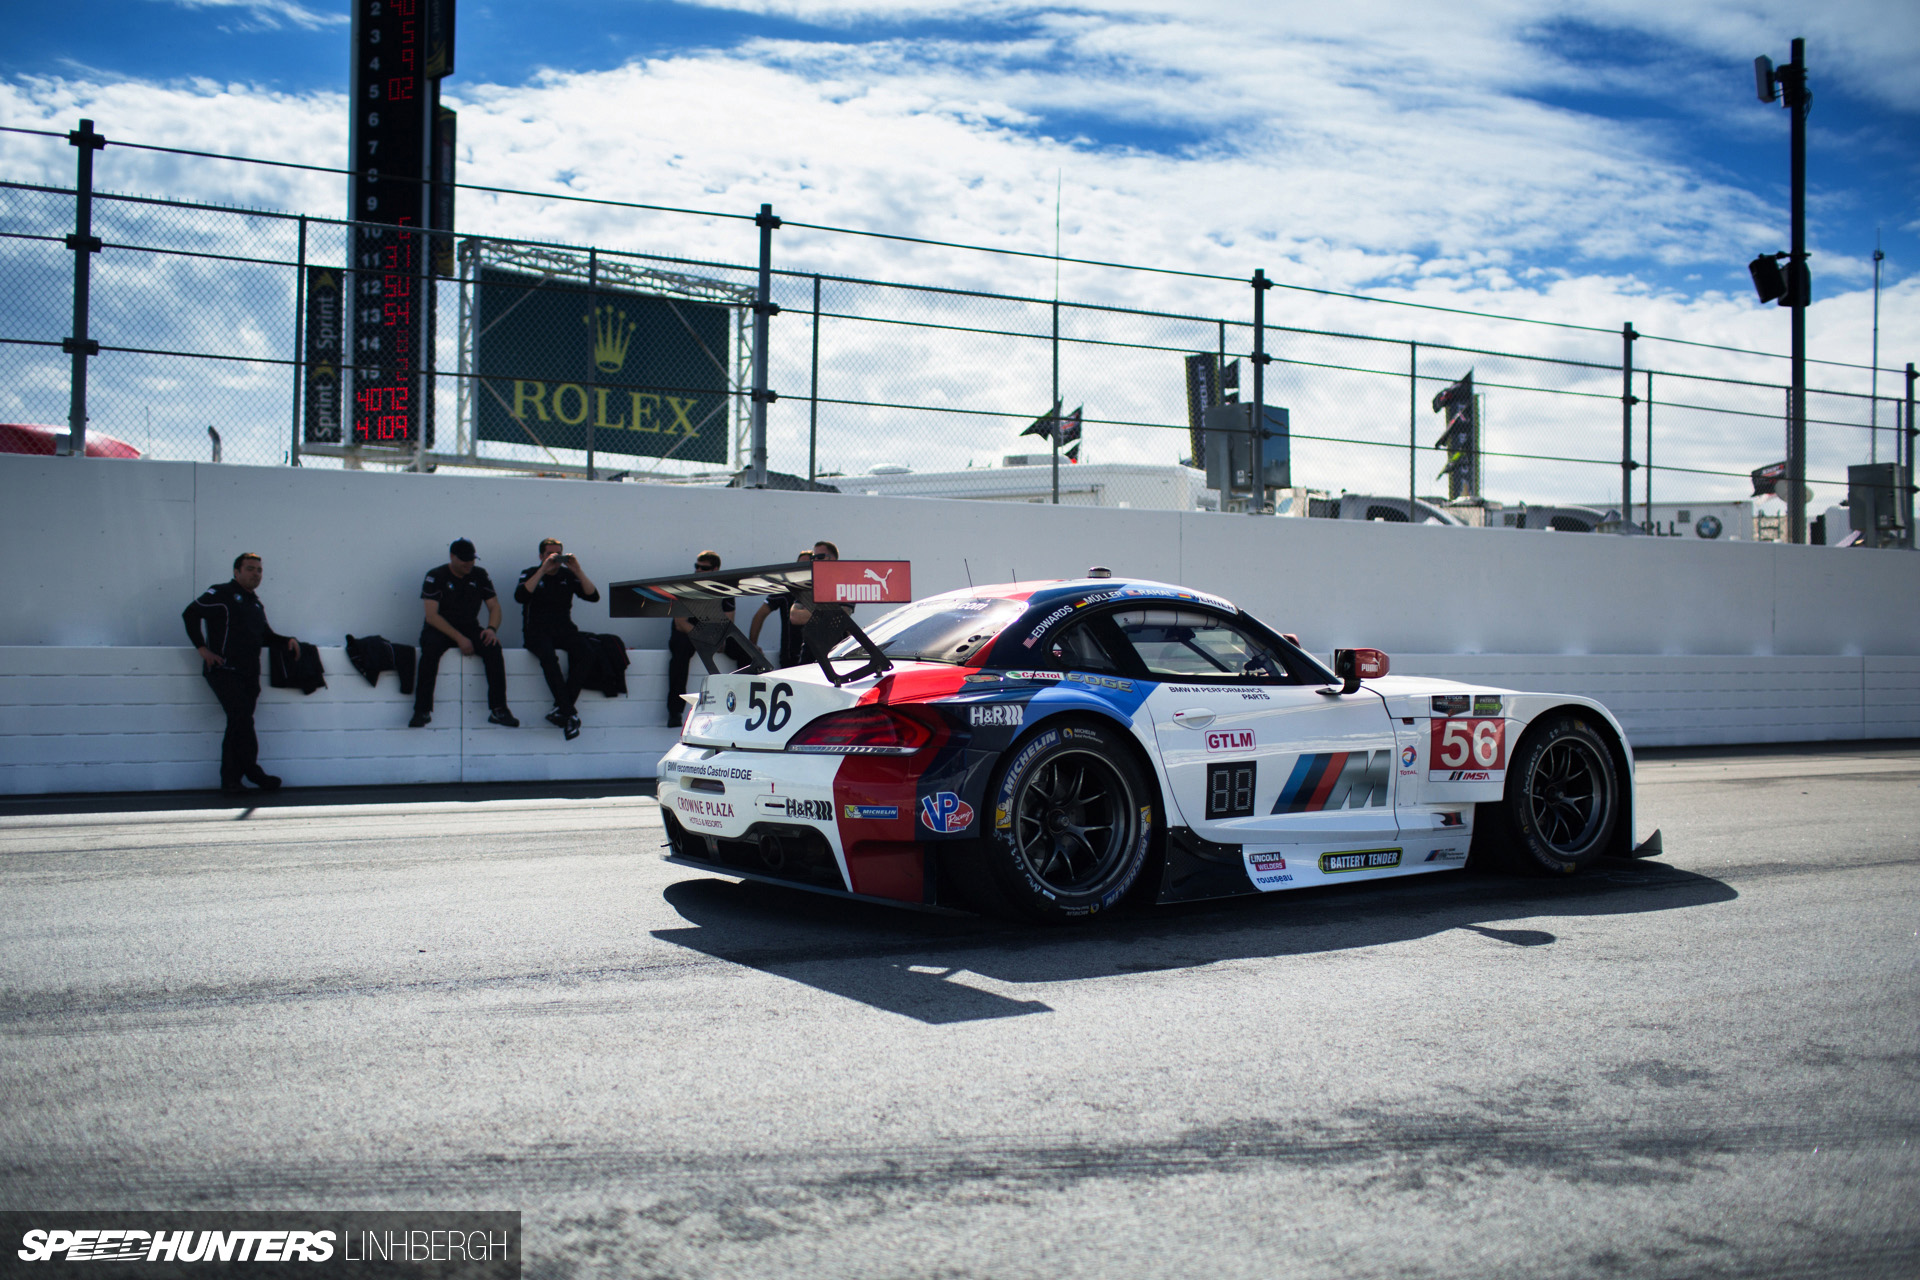 Pain, Guts, Glory... And Chilli FriesBMW Does The Daytona 24 Hours